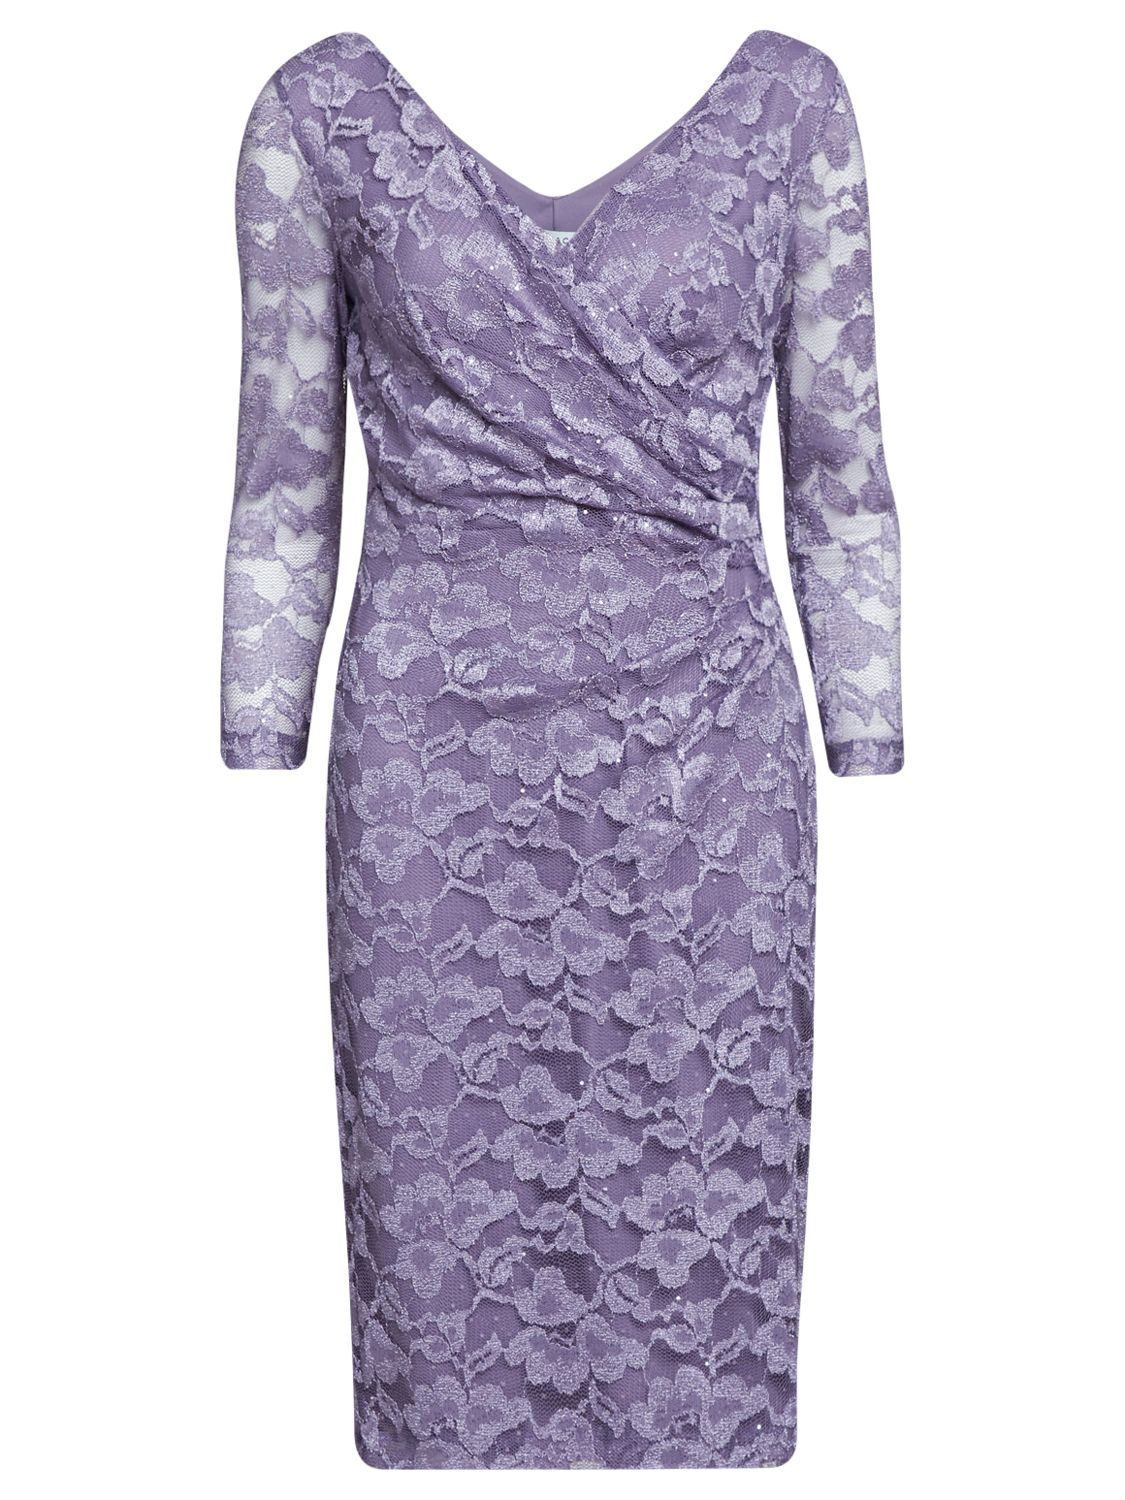 gina bacconi stretch lace sequin dress lavendar haze, gina, bacconi, stretch, lace, sequin, dress, lavendar, haze, gina bacconi, 10|12|14|18|20|16, women, plus size, womens dresses, 1895236